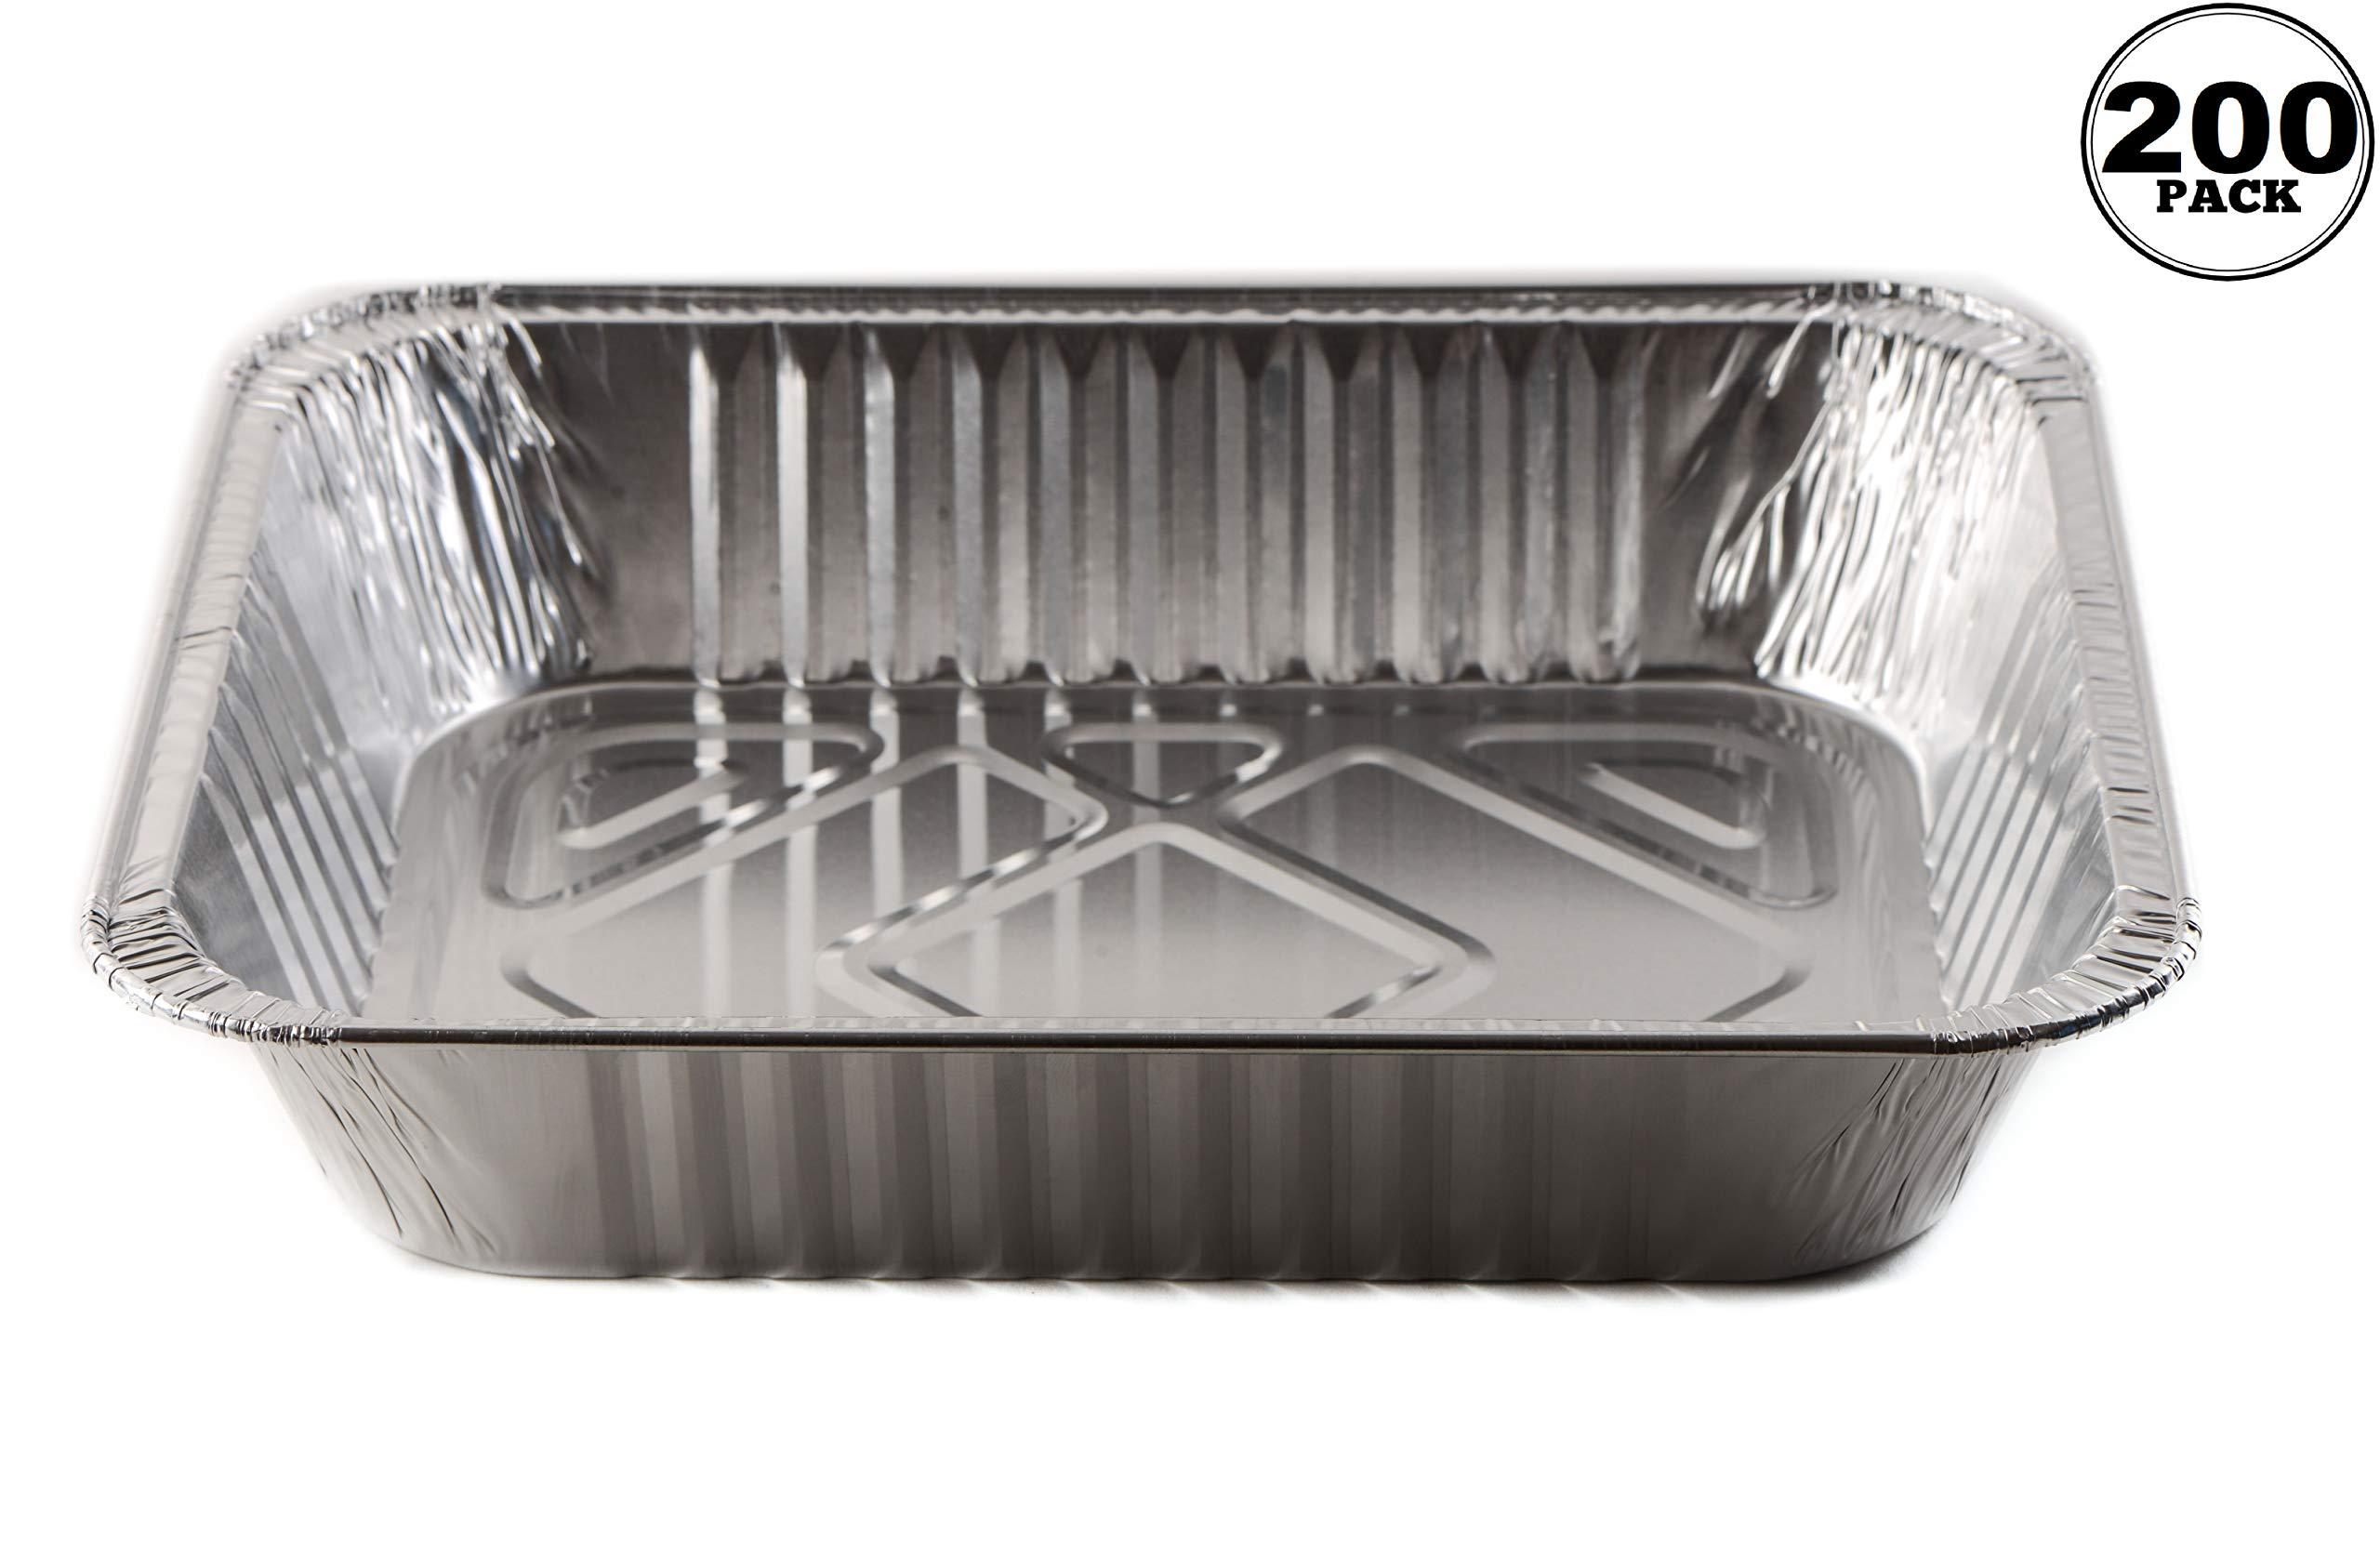 [200 Pack] 9 x 13 Disposable Aluminum Foil Steam Table Deep Pans - Half Size Baker's Choice Great for Roasting, Potluck, Reheating, Catering, Party, BBQ, Baking by EcoQuality